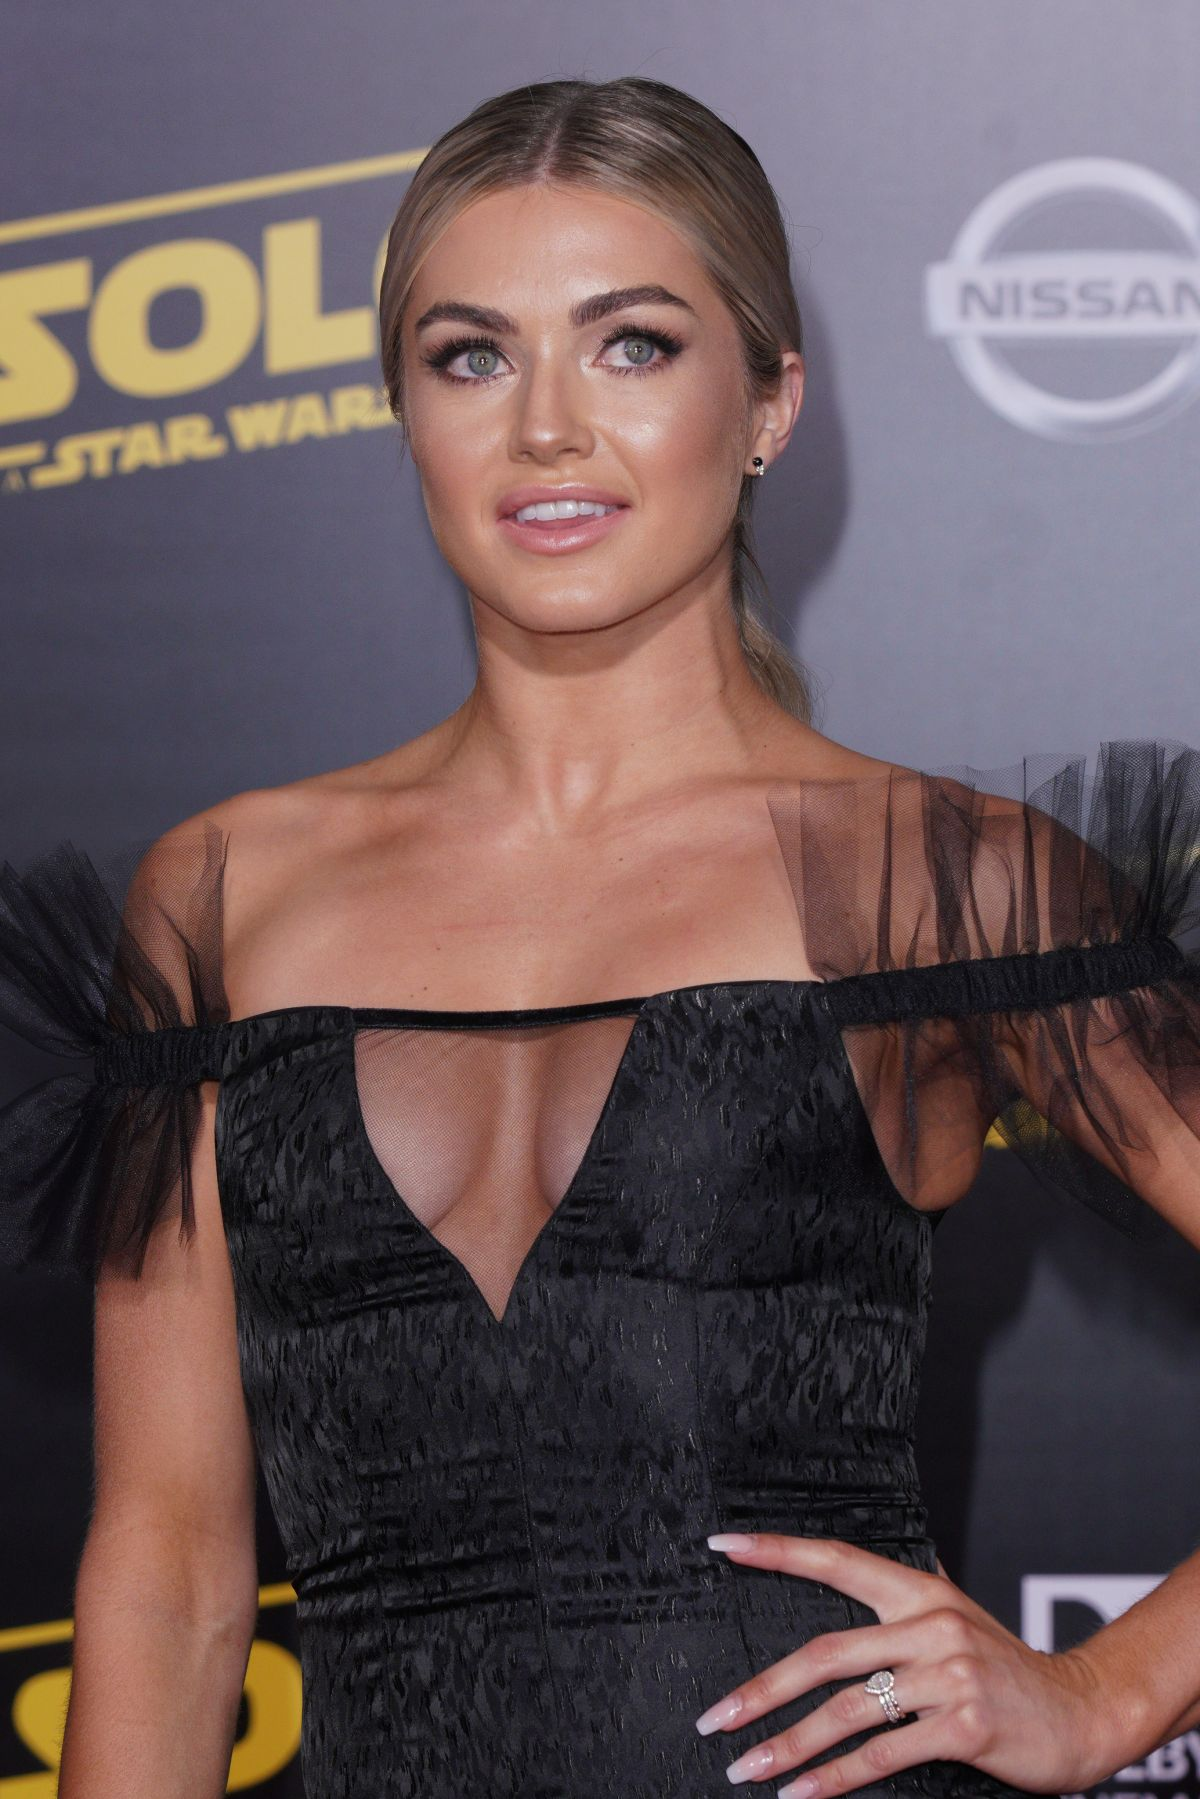 70752358_lindsay-arnold-solo-a-star-wars-story-hollywood-premiere-in-la-10-05-2018.jpg